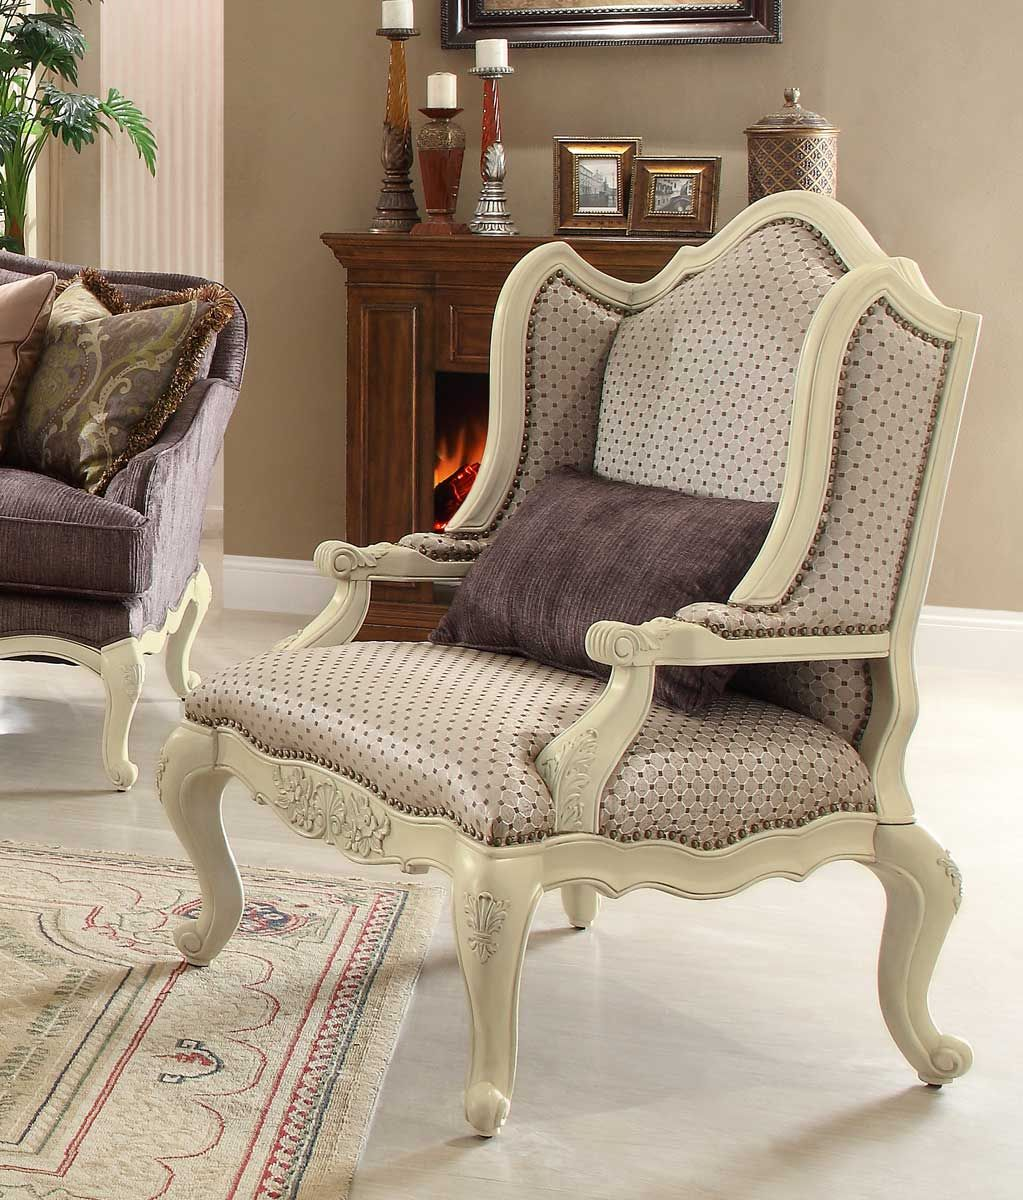 Beautiful Homelegance Casanova II Accent Chair   Antique White Price : $934.00